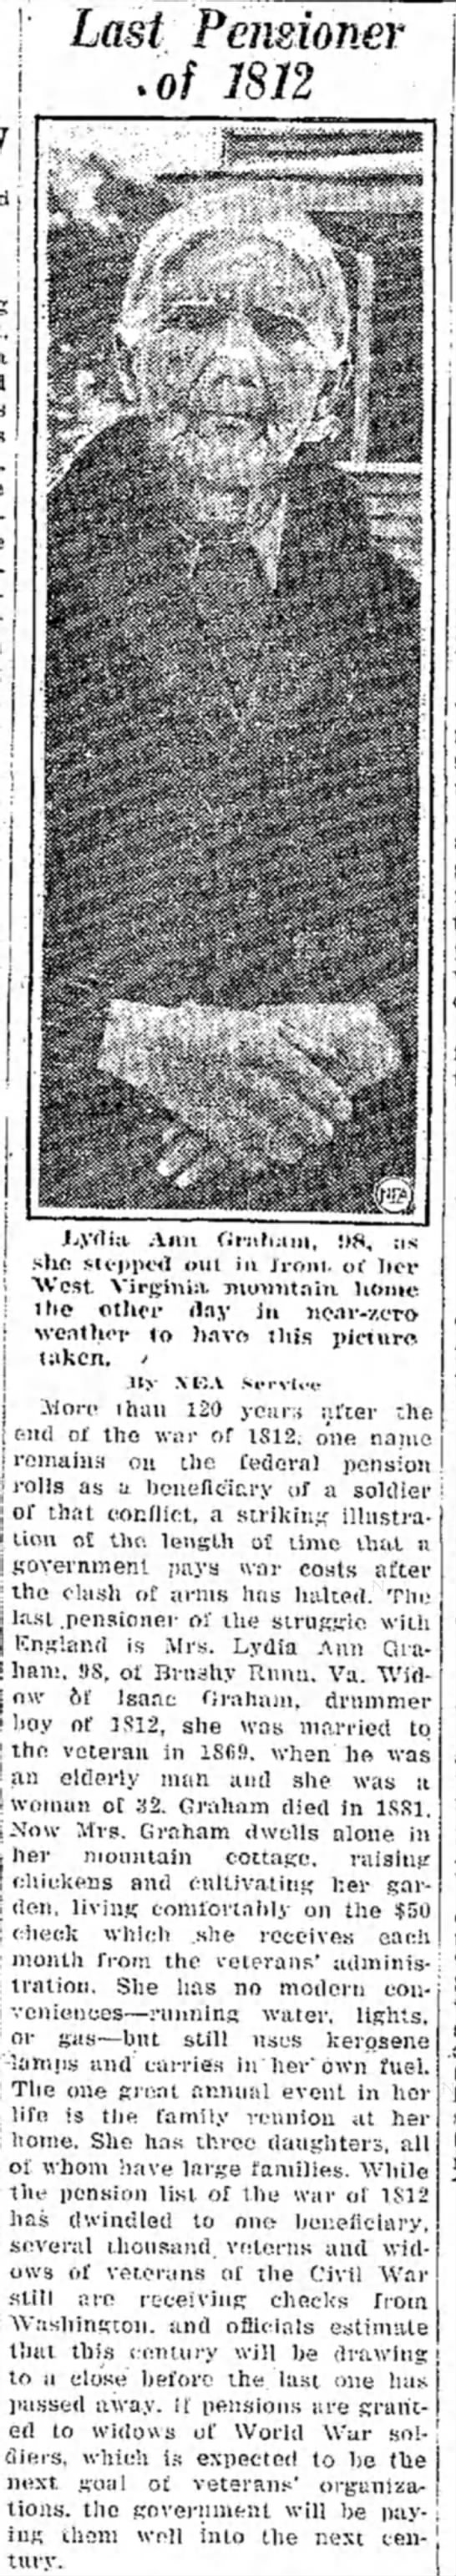 1812 War - last one to receive a pension was 98 yrs old - | i j ' Last Pensioner .of 1812 Jjydta Ann...